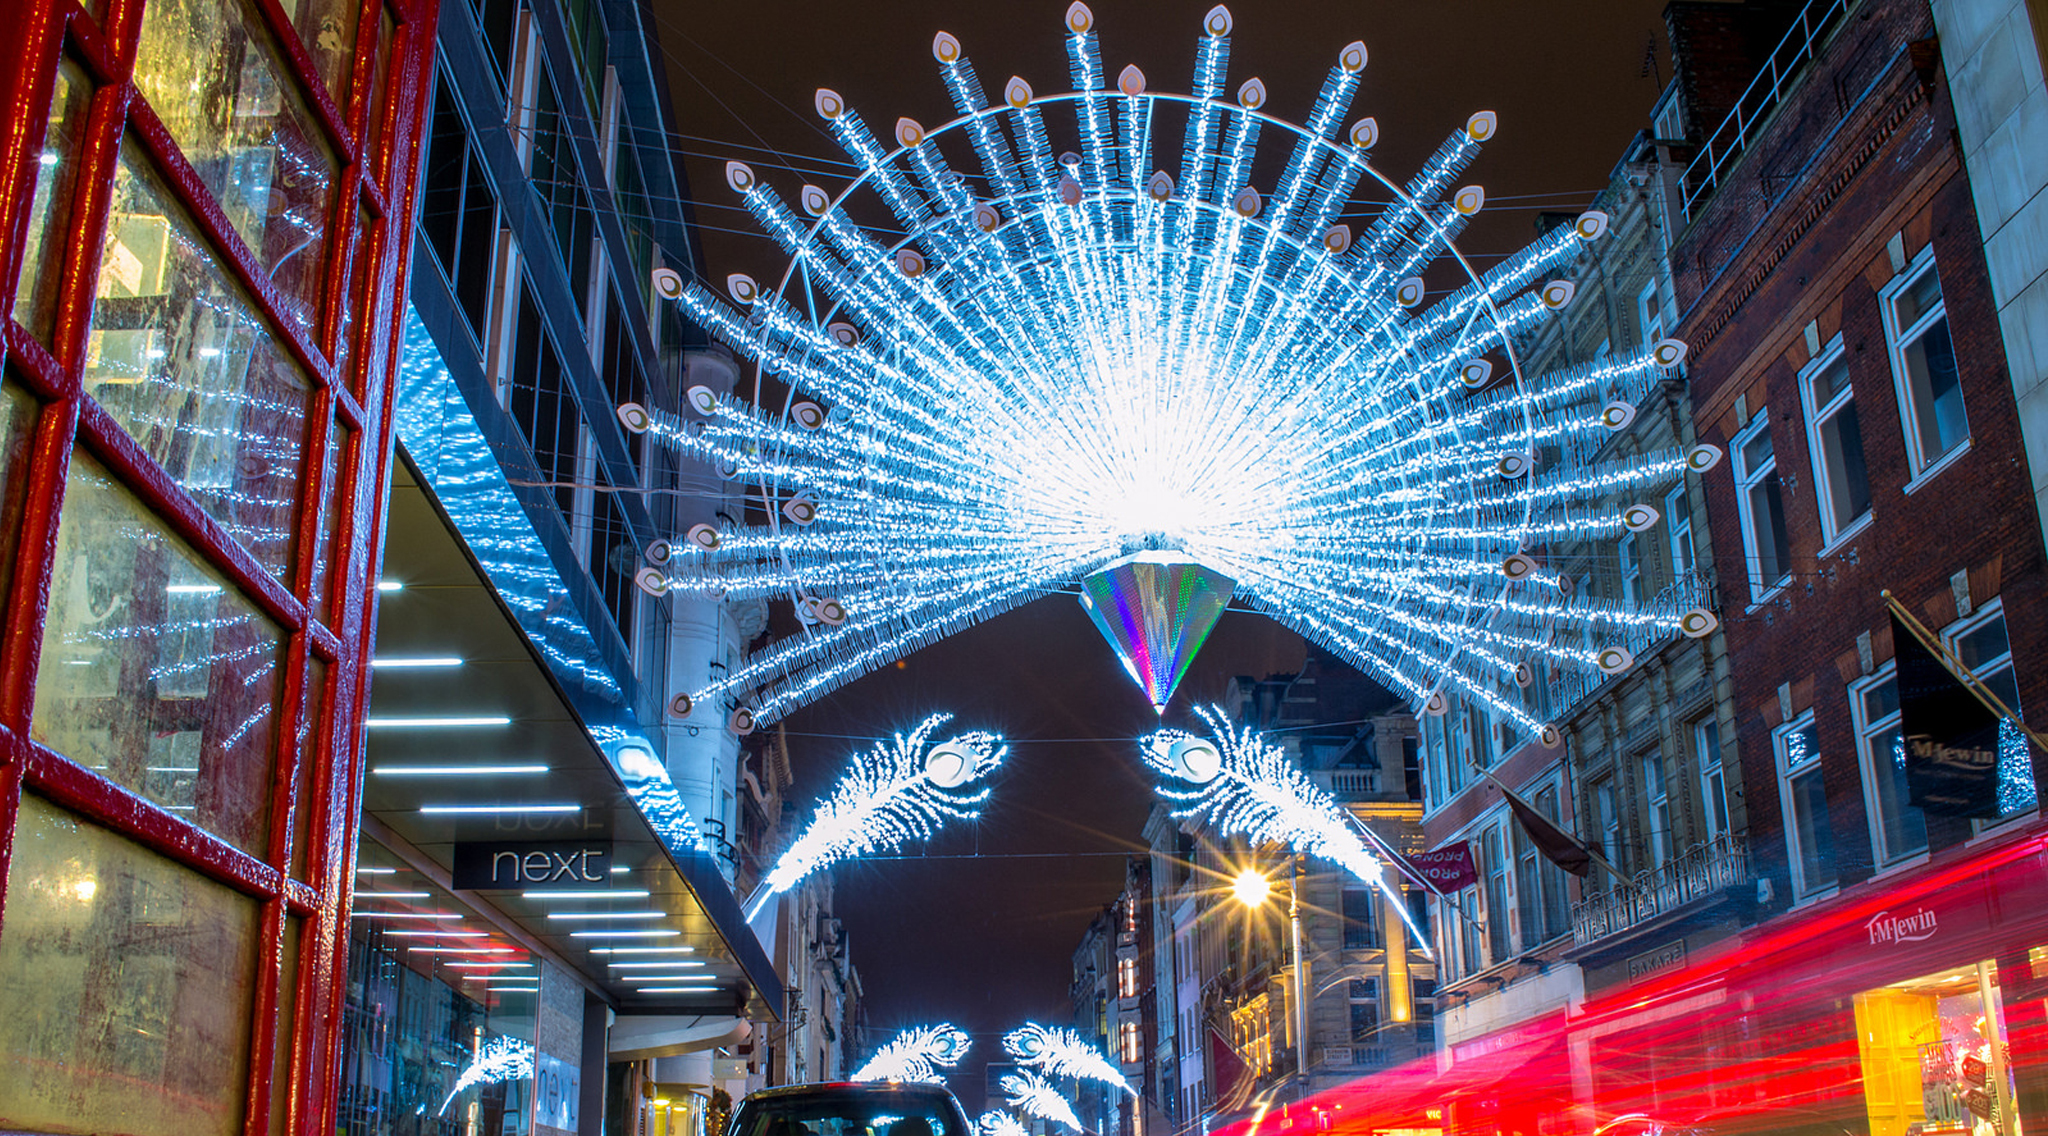 See the Christmas lights twinkling in central London